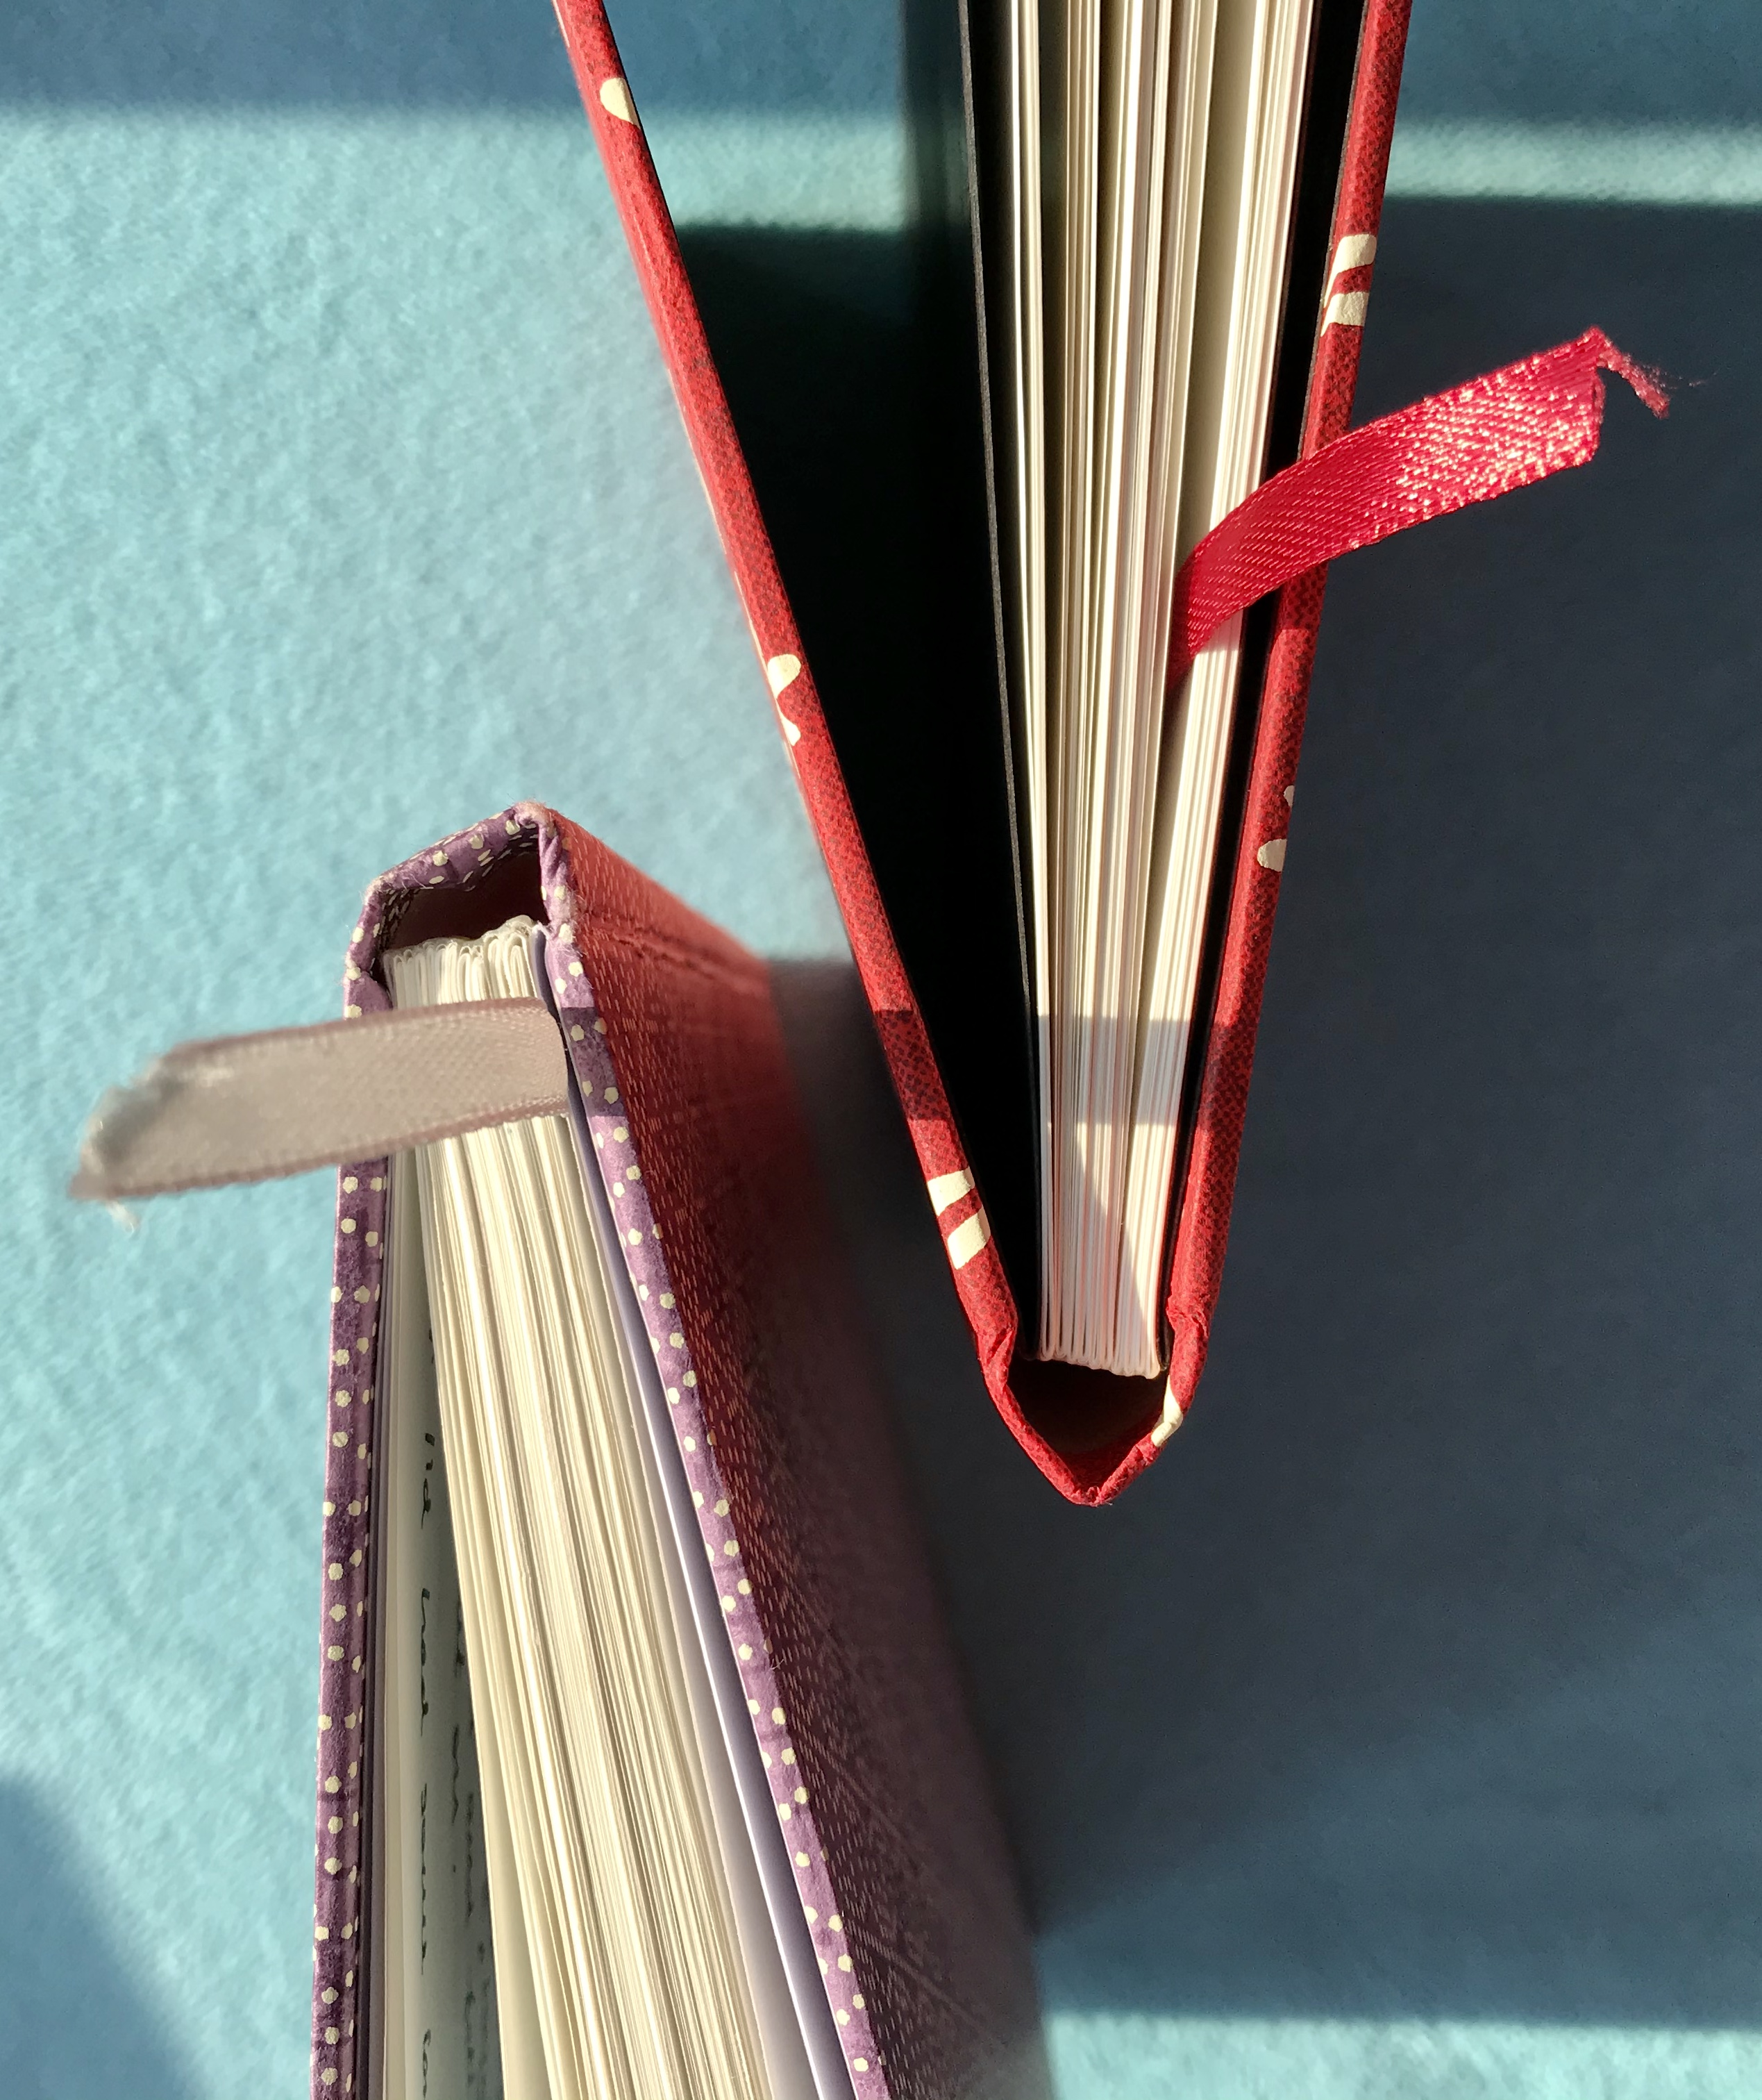 Detail of the notebook binding